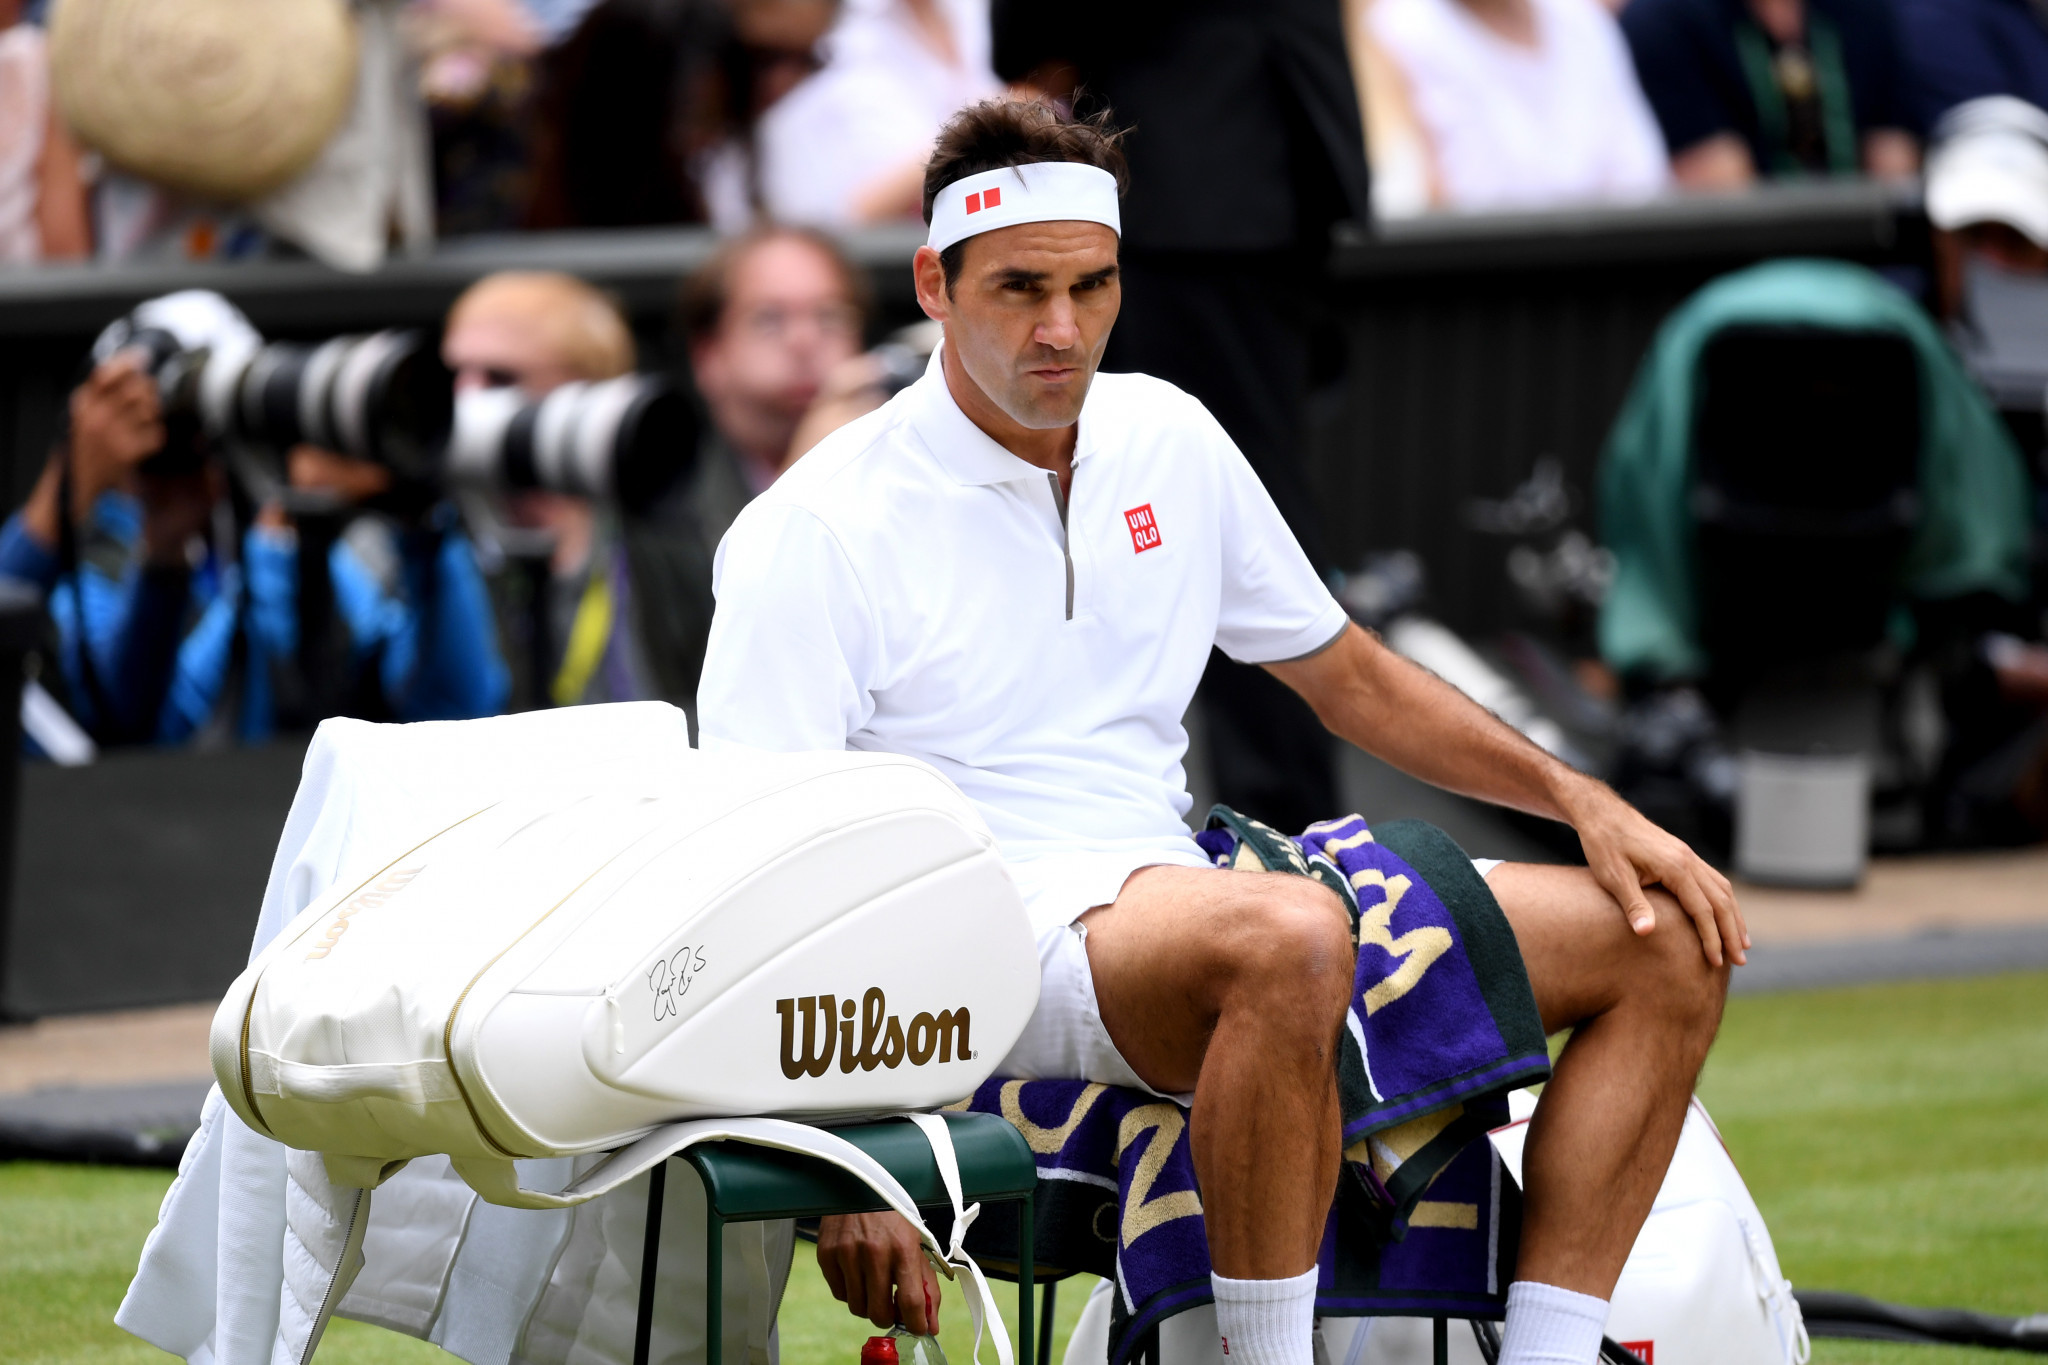 Federer takes a break in between games ©Getty Images